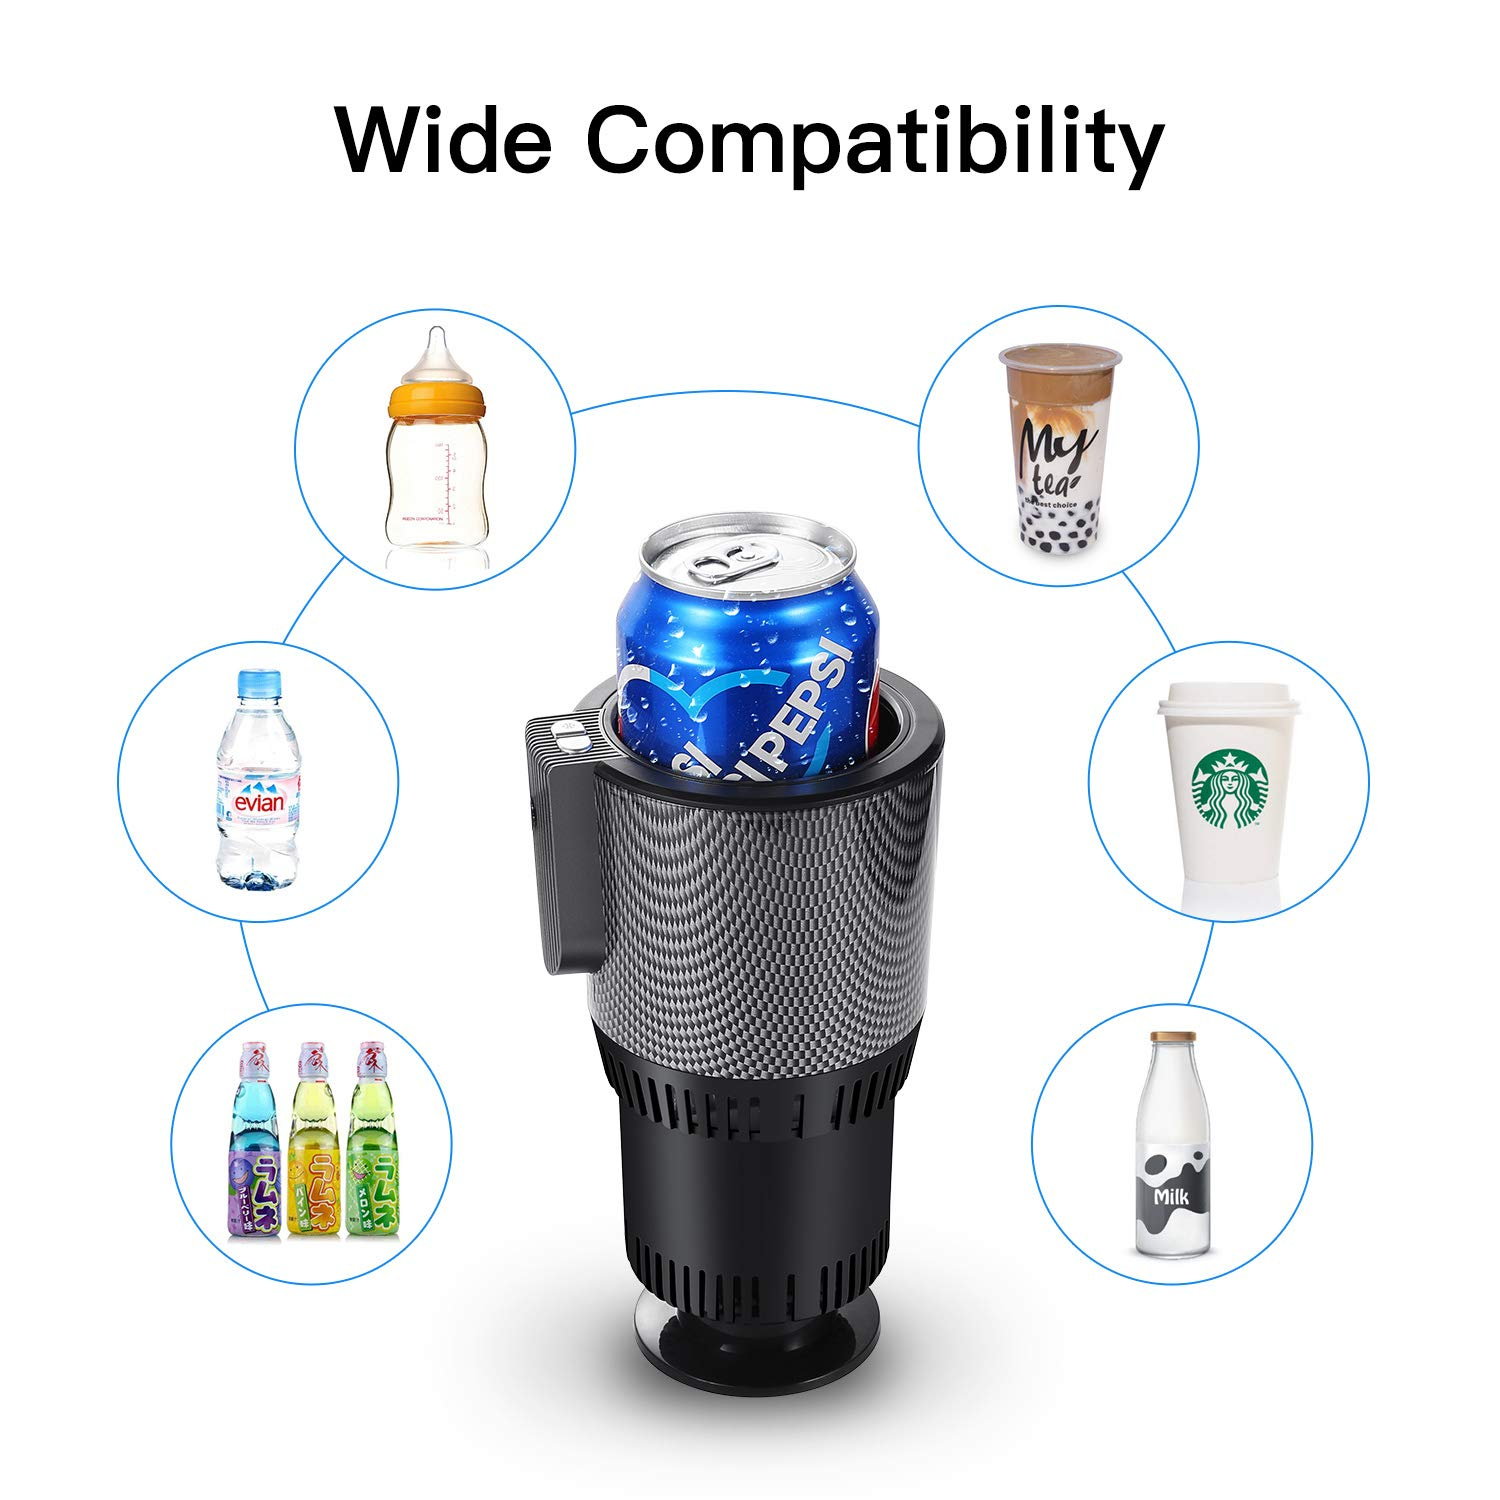 Ranipobo Kühler Wärmer Smart Car Cup, Premium 2-in-1 Auto Tasse Warm & Cool 5L Smart Auto Cup Cup Holder 12V Kühler wärmer Smart Auto Tasse, Kühler wärmer Smart Auto Cup